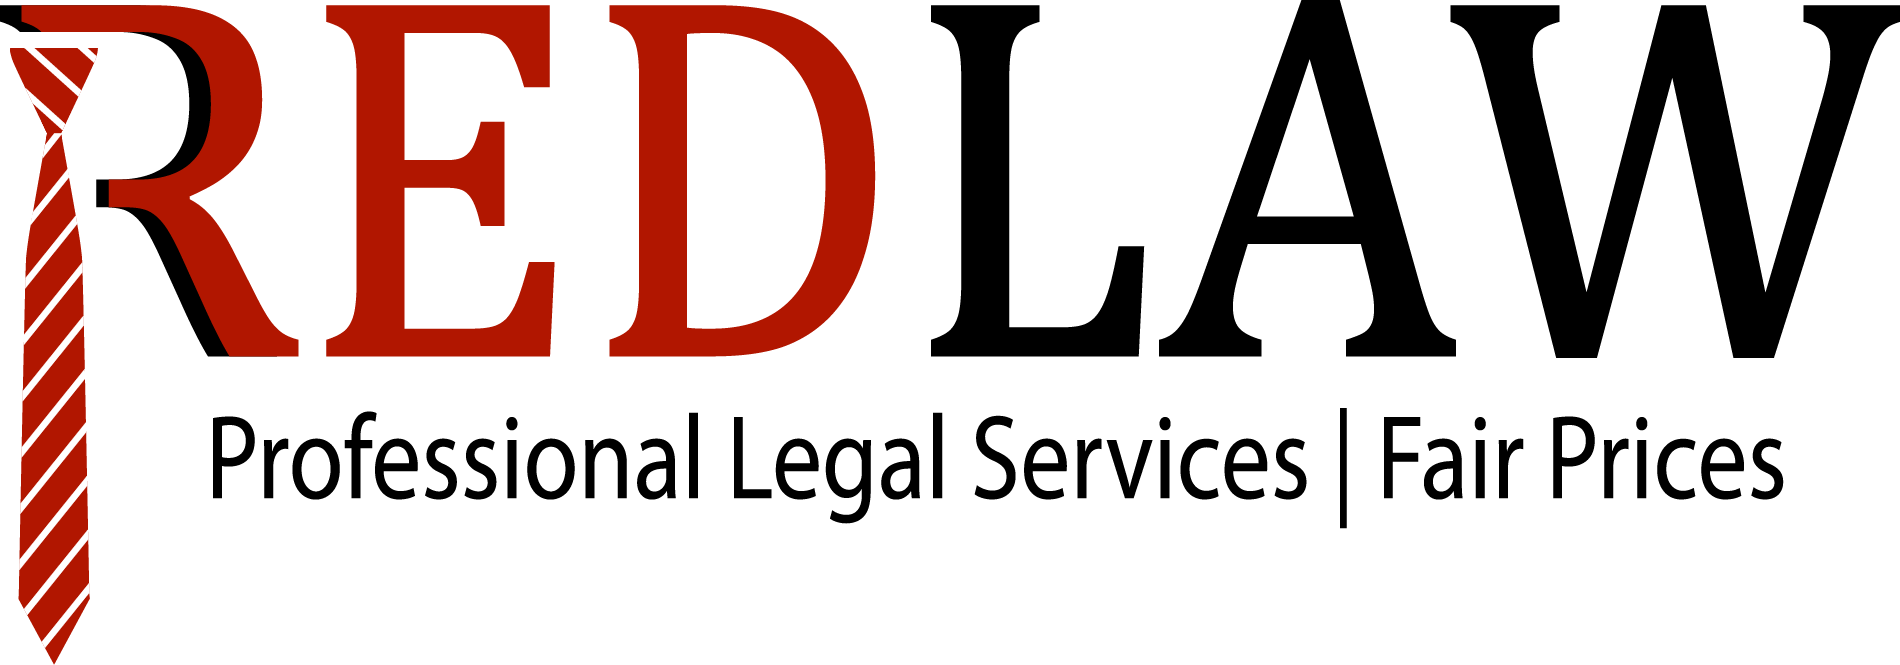 Red Law Utah – Family Law, Estate Planning, Business & Contracts